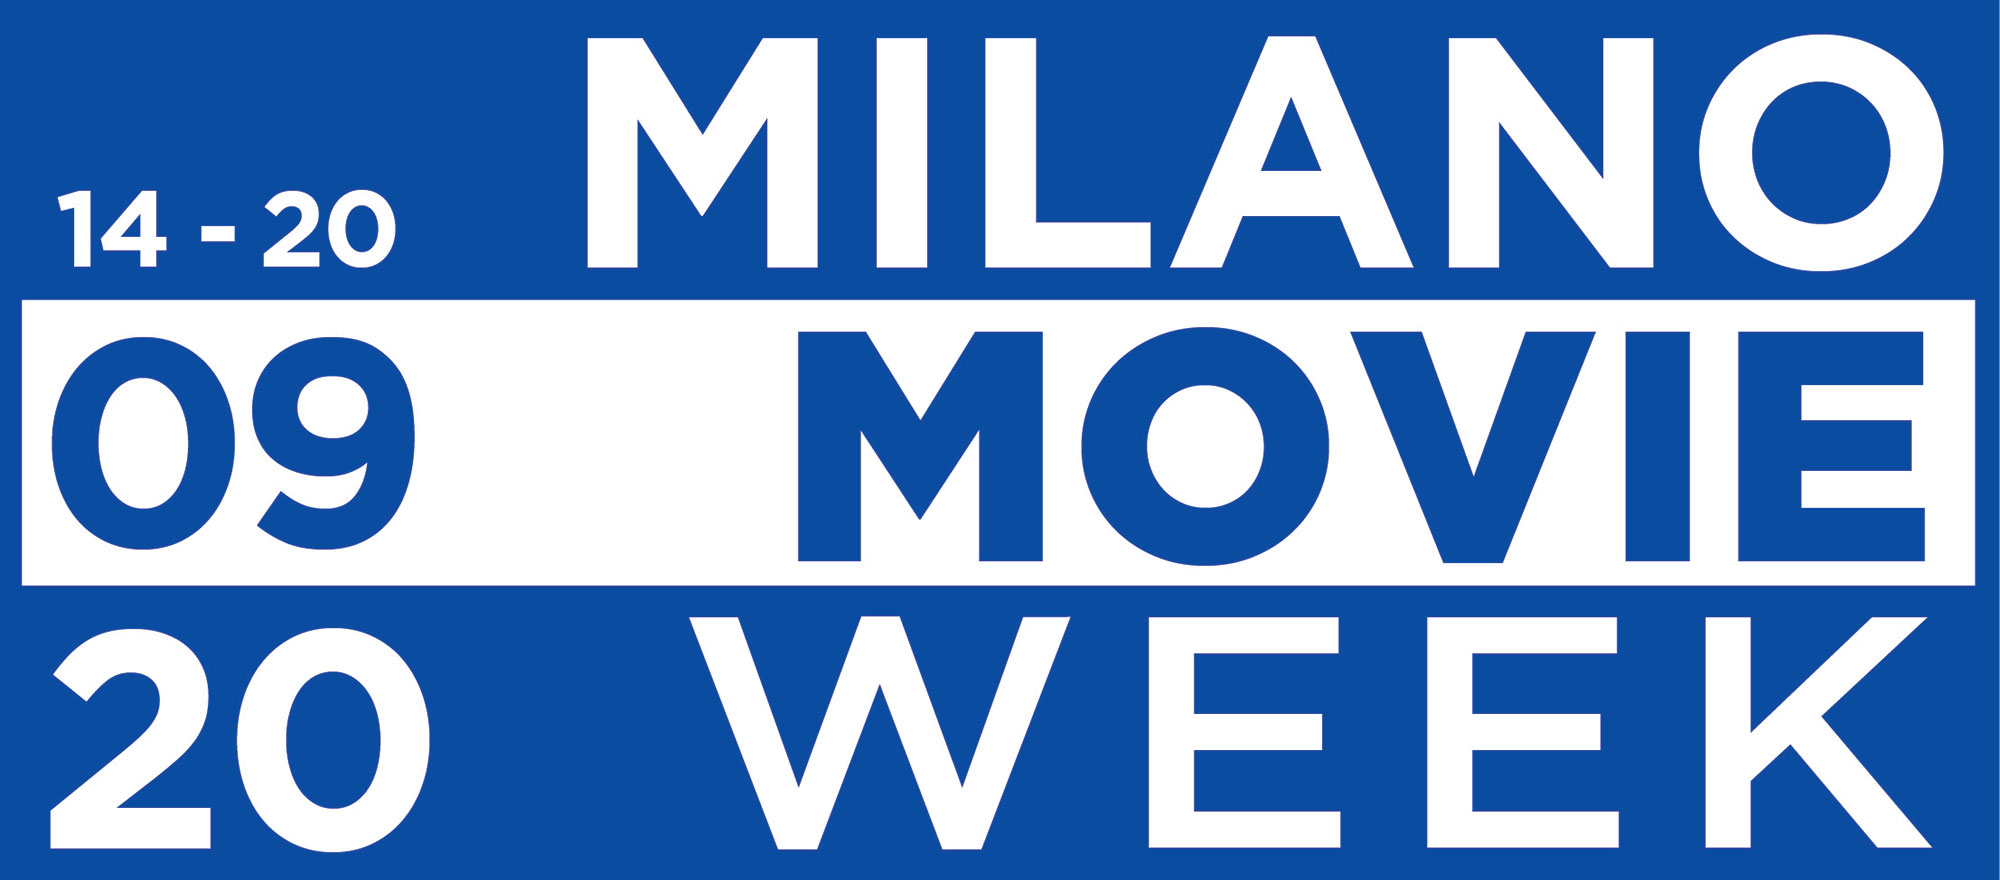 MILANO MOVIEWEEK | 14 – 20 SETTEMBRE 2020